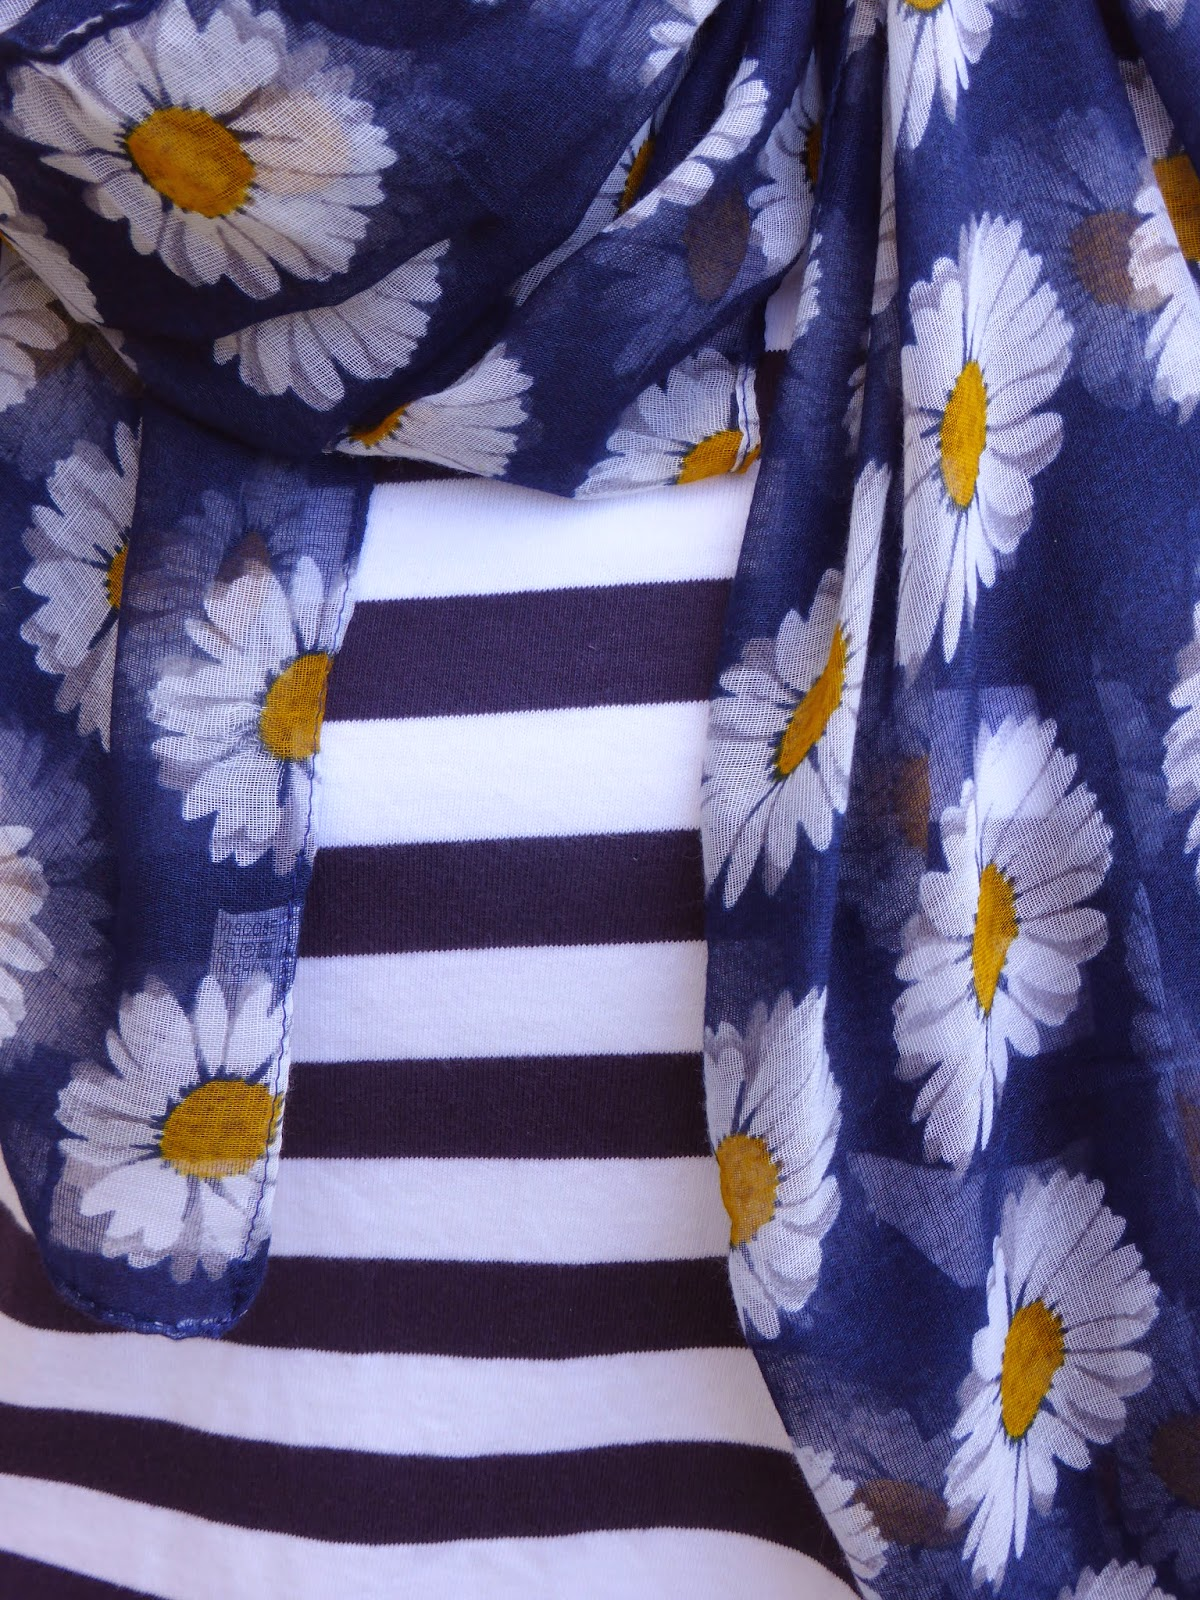 Over 40 blogger What Lizzy Loves combines breton stripes with floral scarf